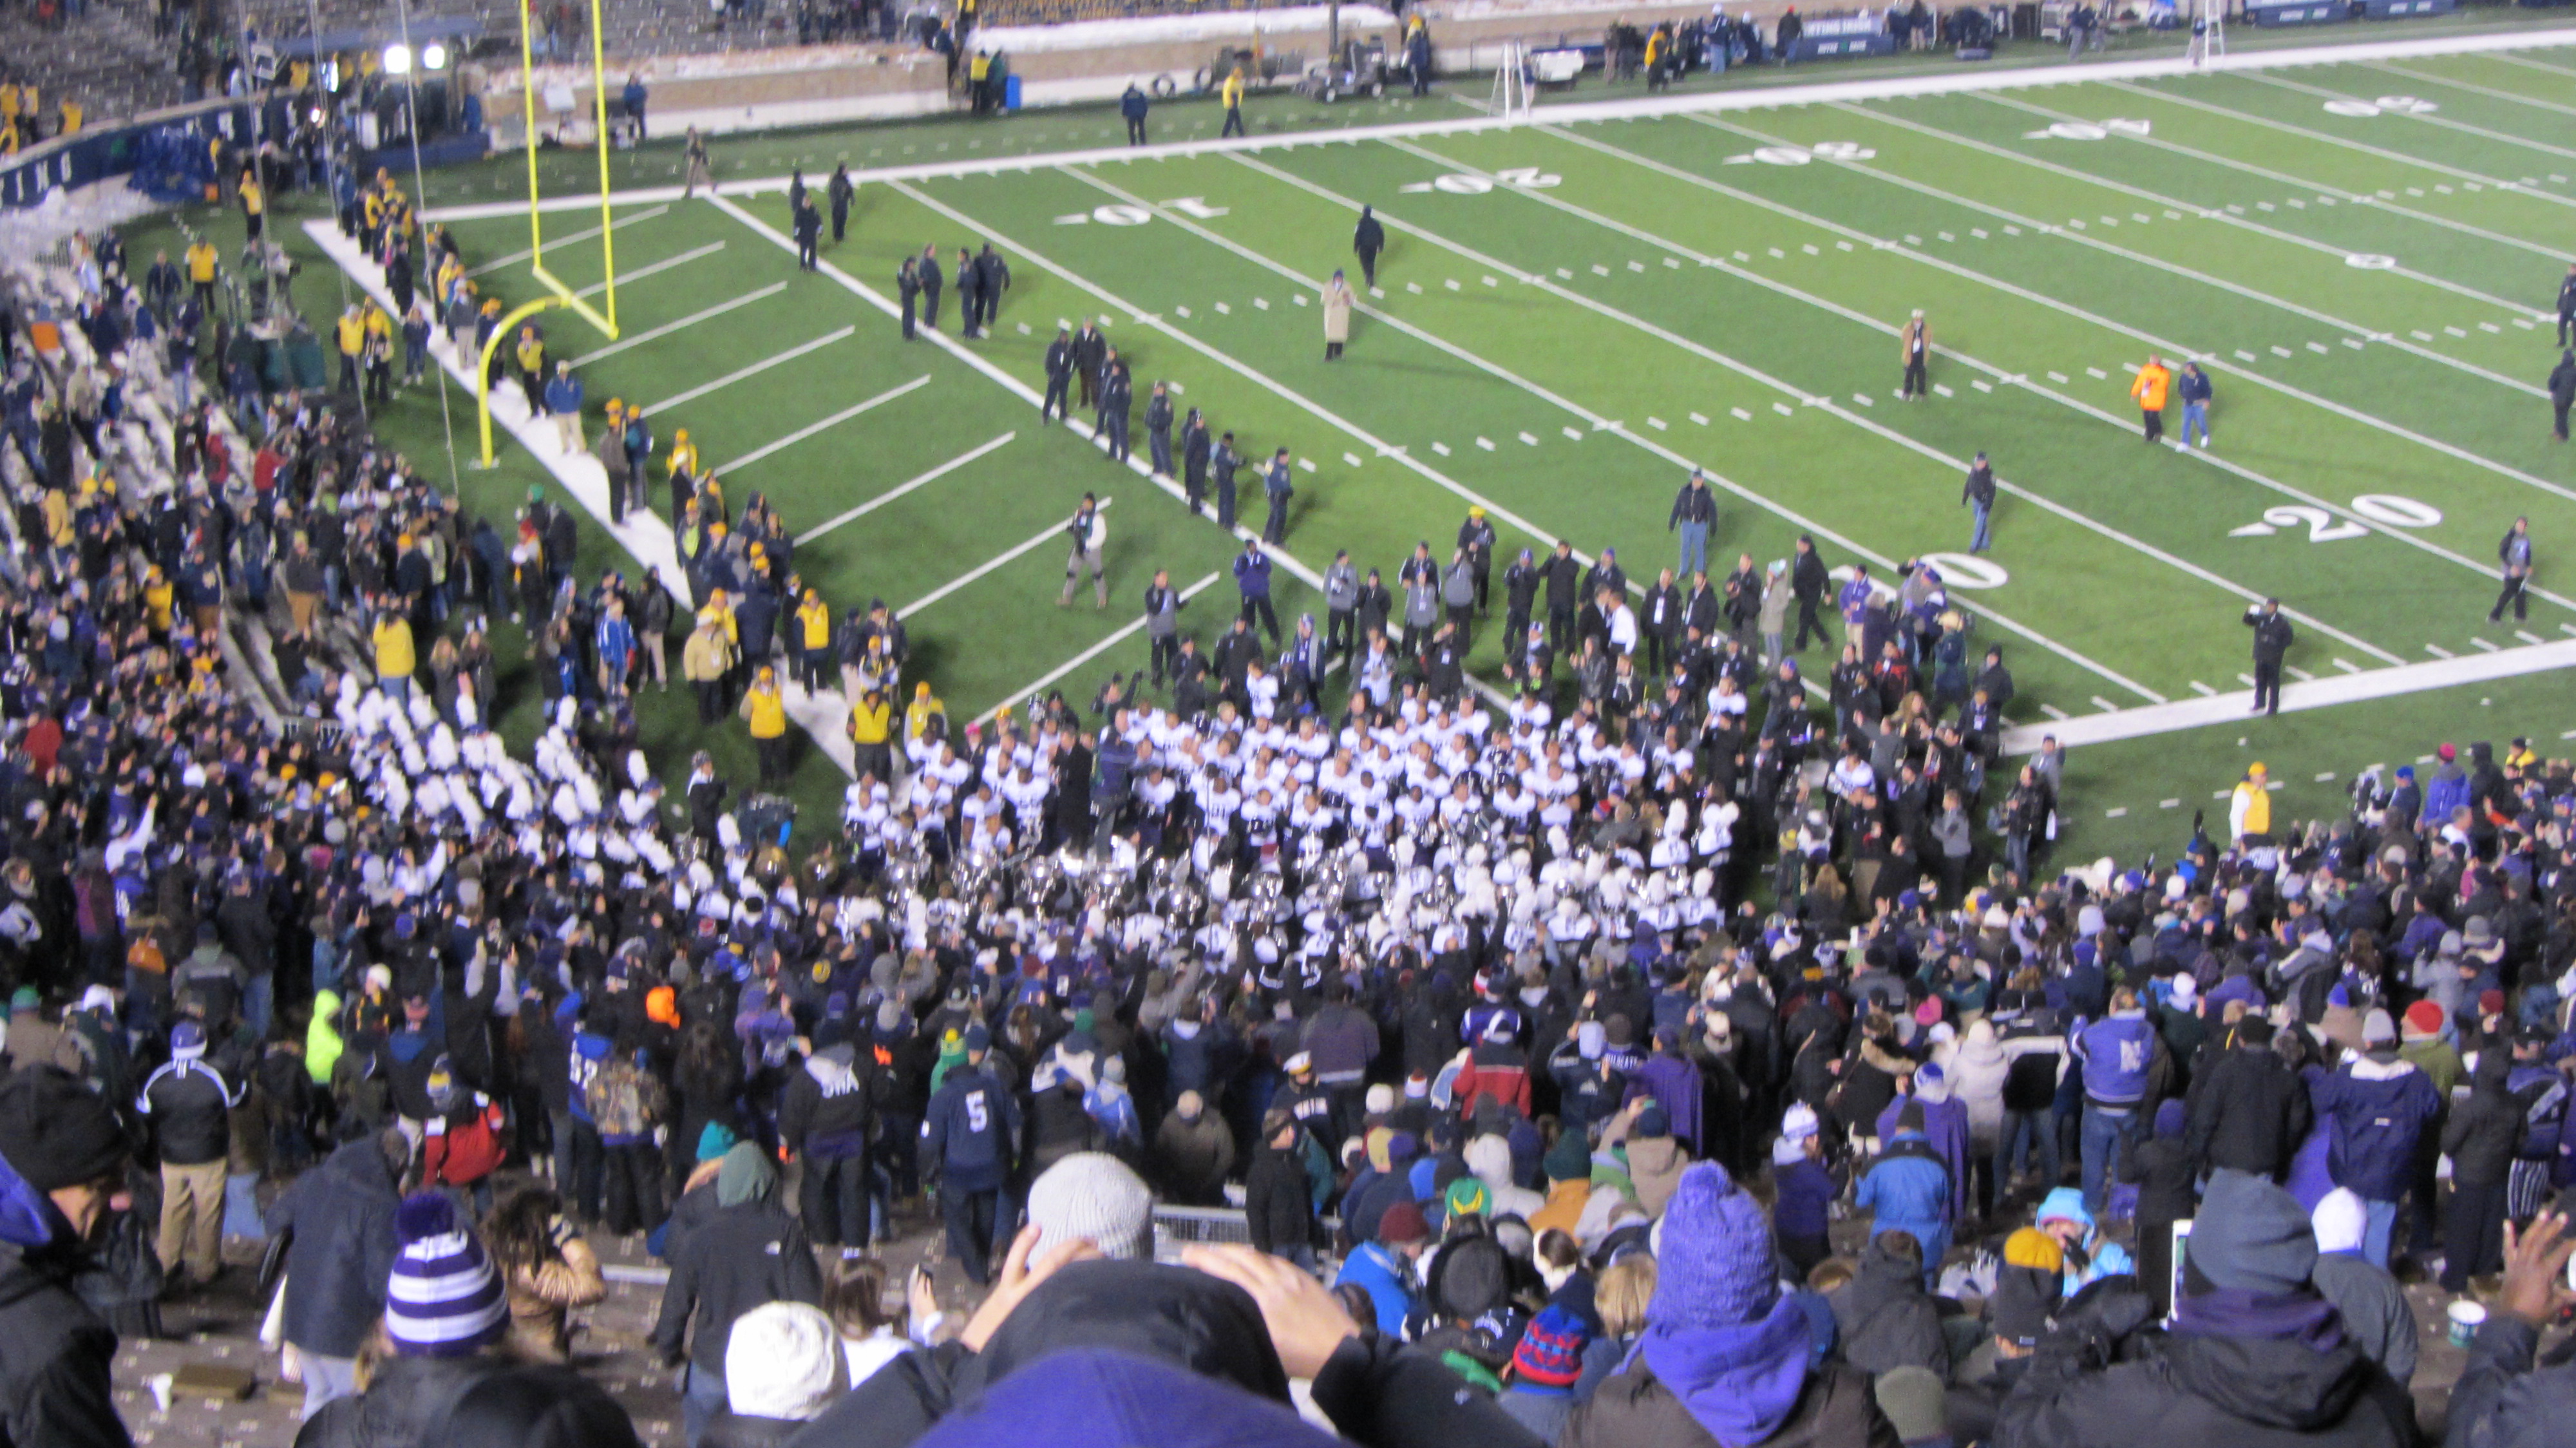 Northwestern players celebrating with the band and fans!